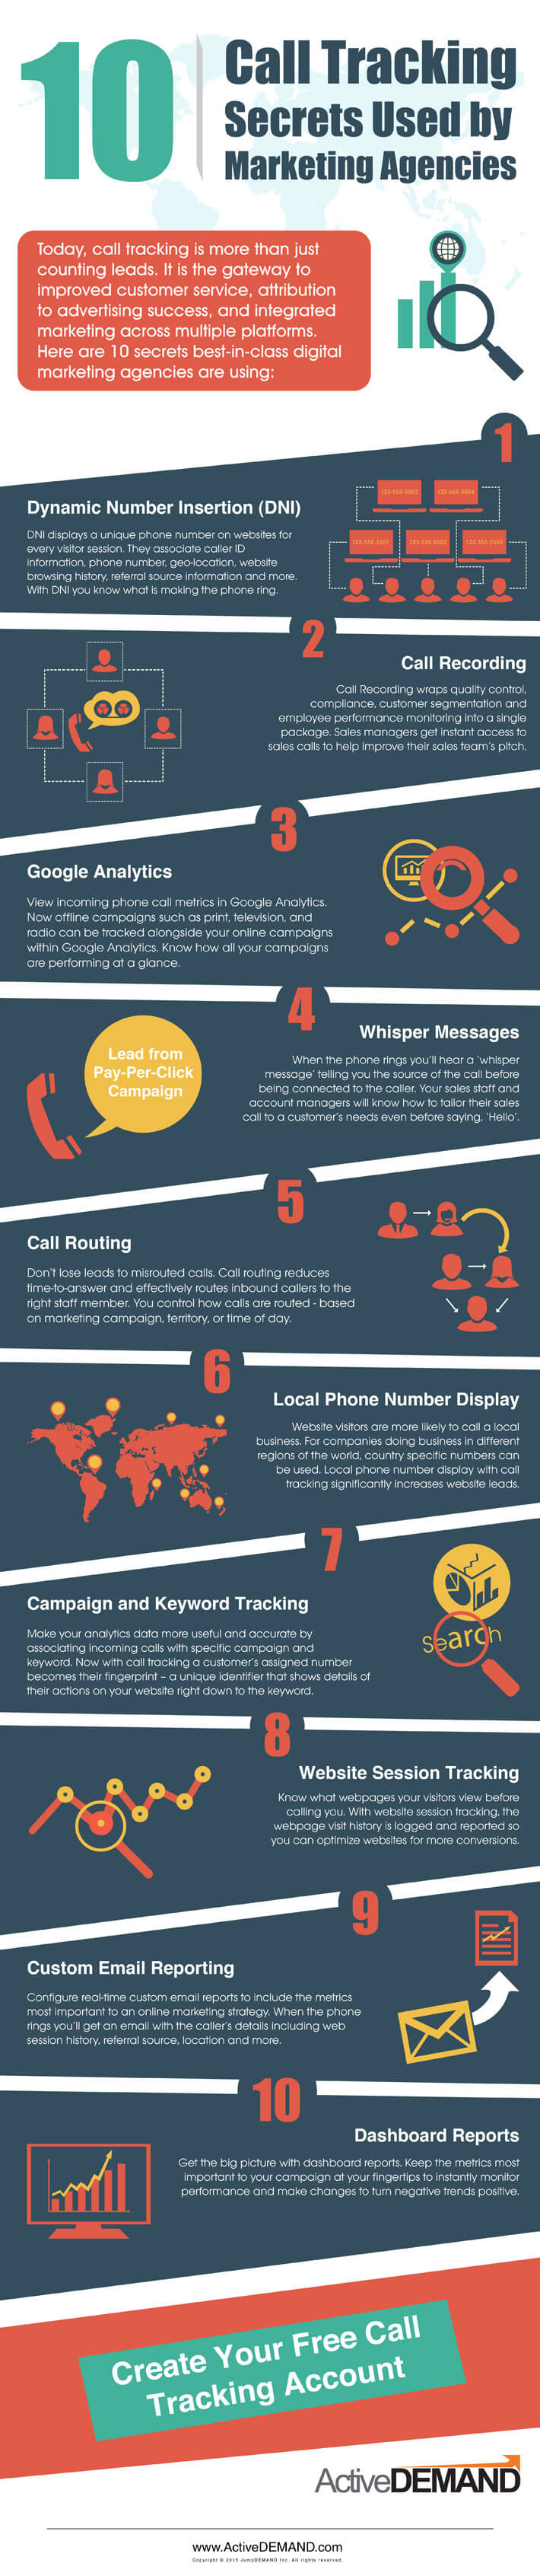 10 Call Tracking Secrets Used by Marketing Agencies